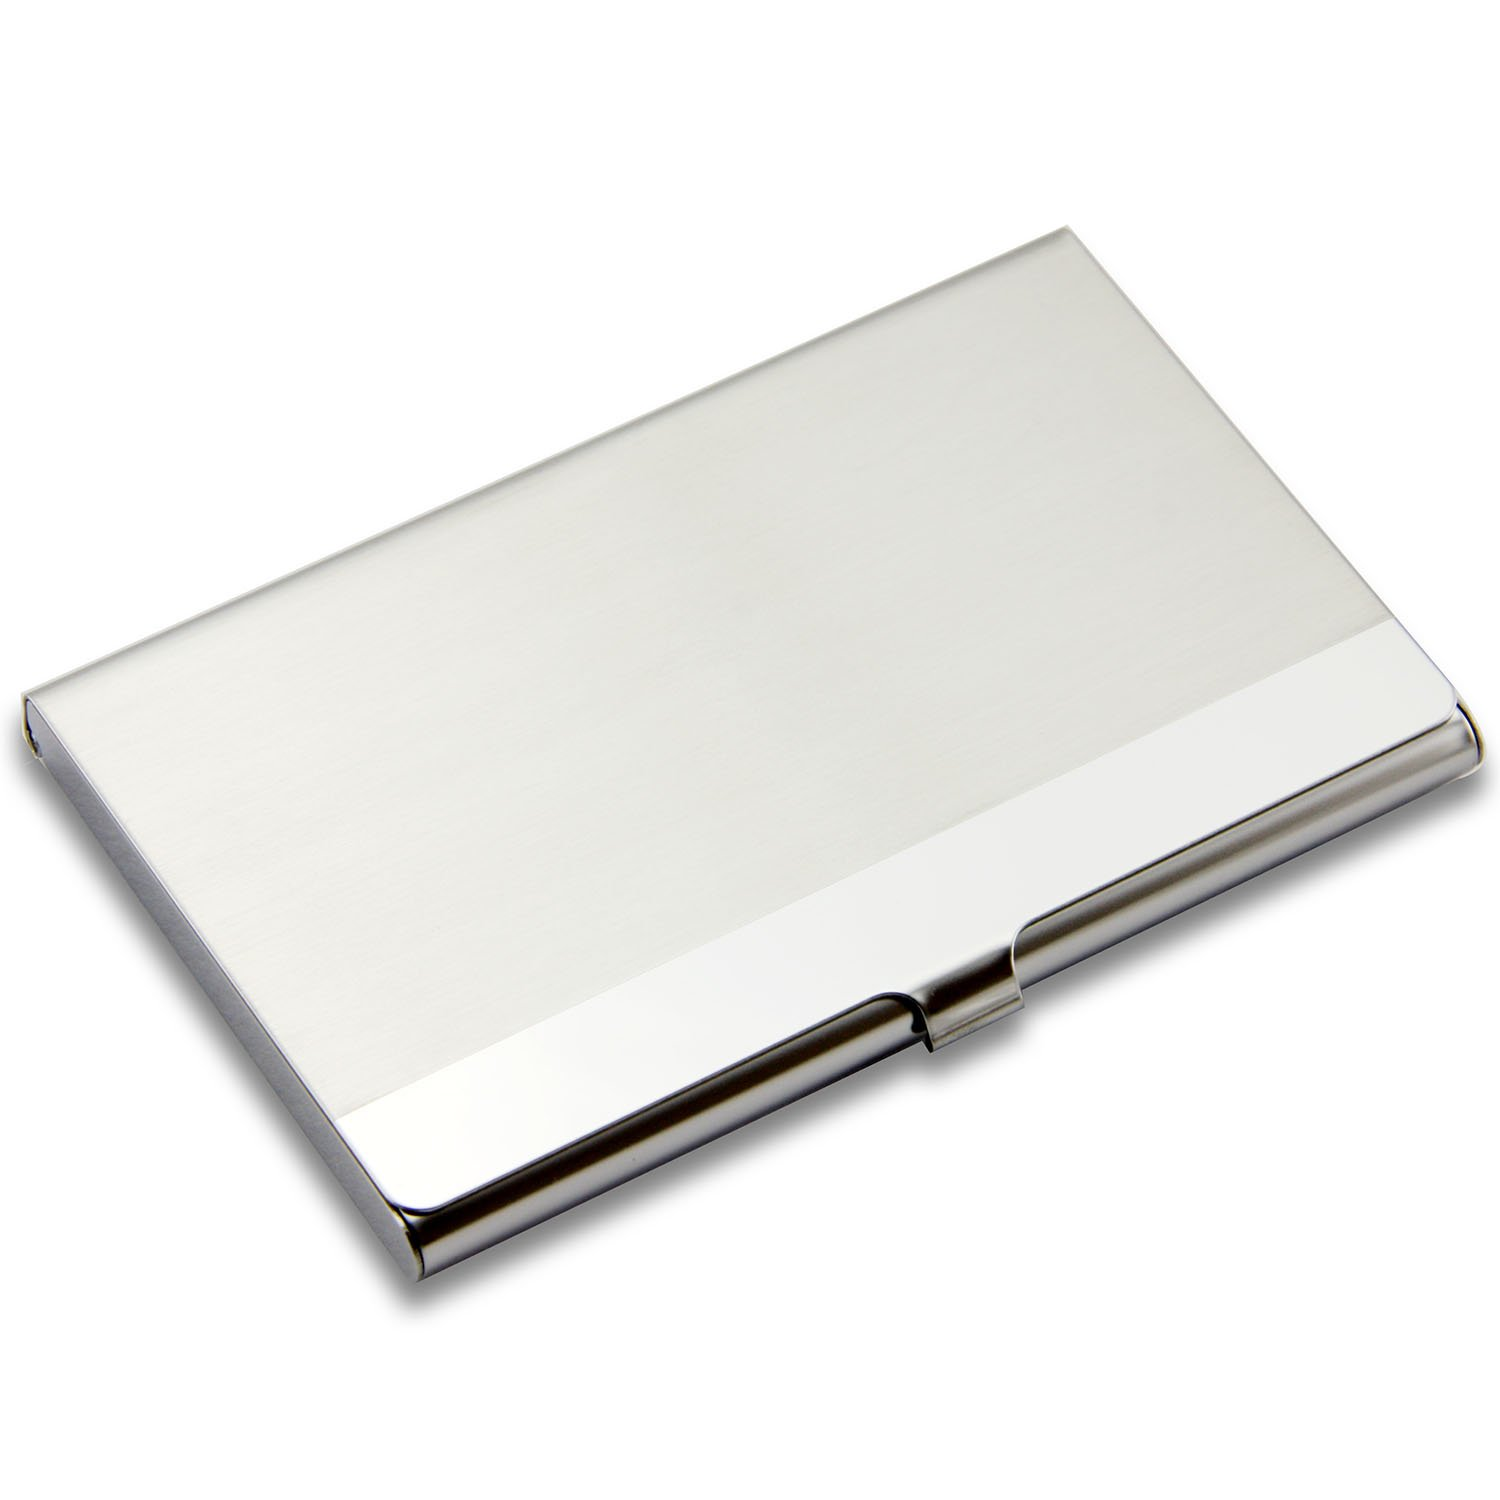 Amazon.com : Partstock Business Card Holder - Stainless Steel ...